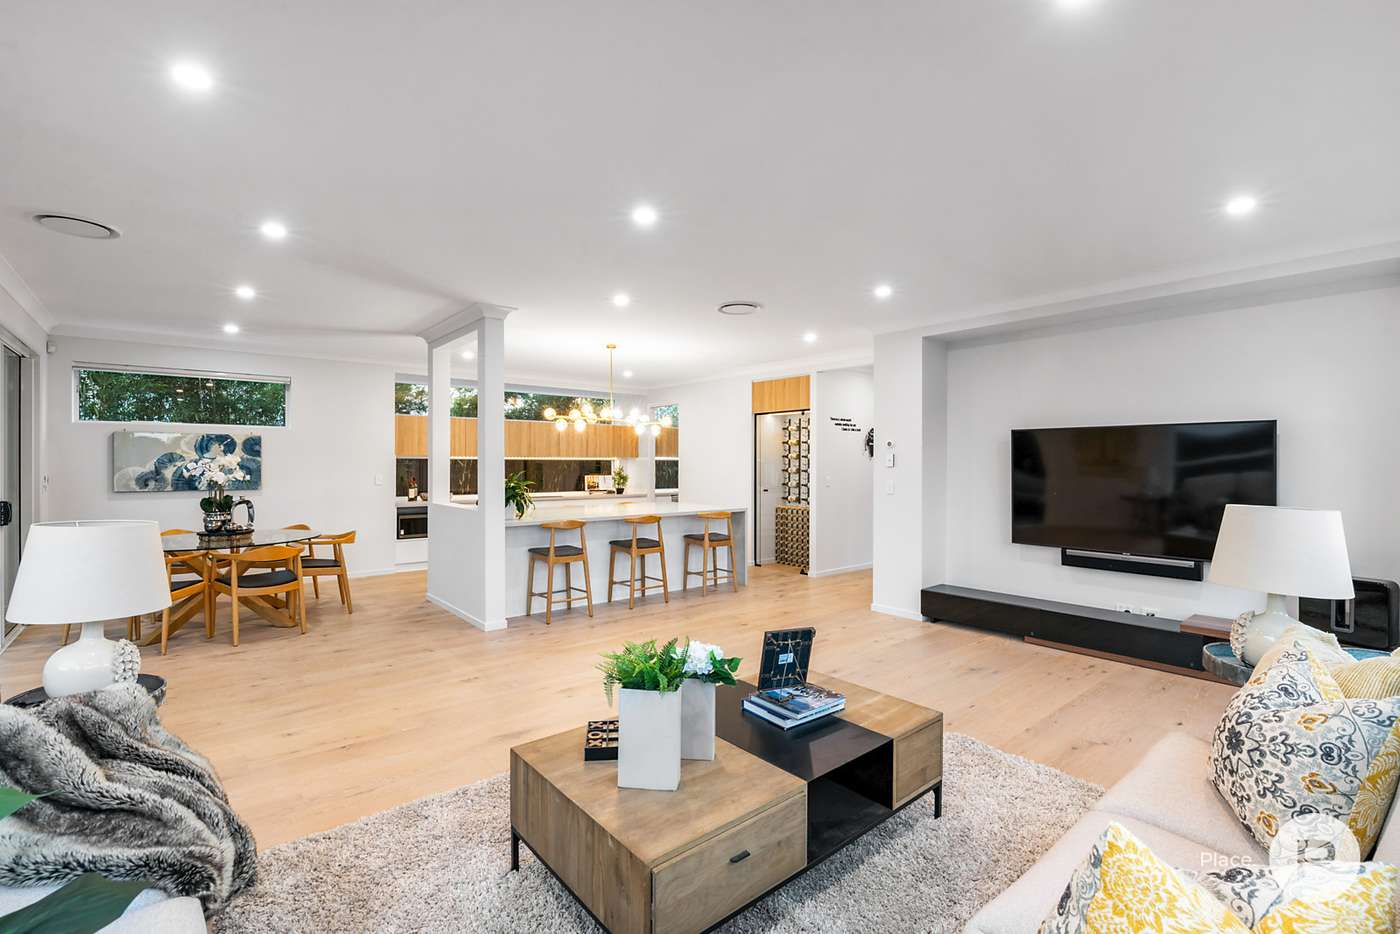 Fifth view of Homely house listing, 71 Margate Street, Mount Gravatt East QLD 4122